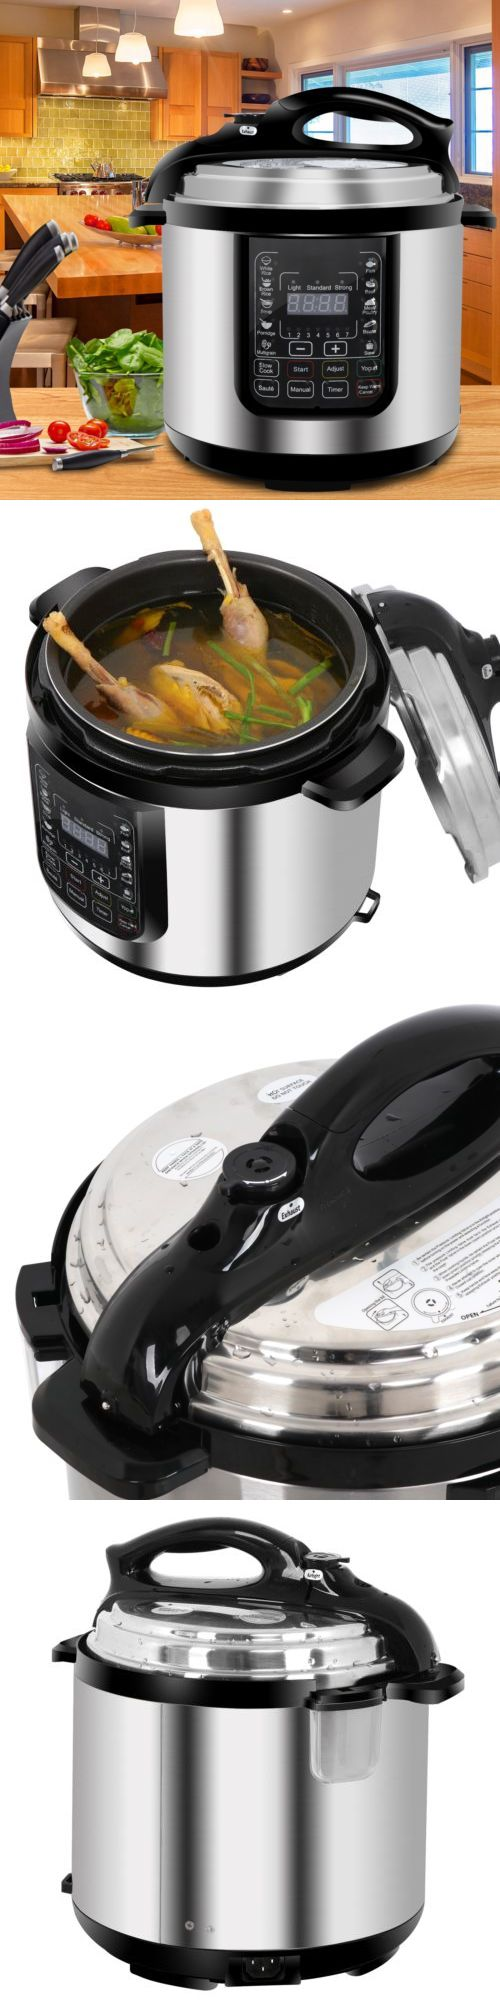 Slow cookers and pressure cookers qt in multiuse